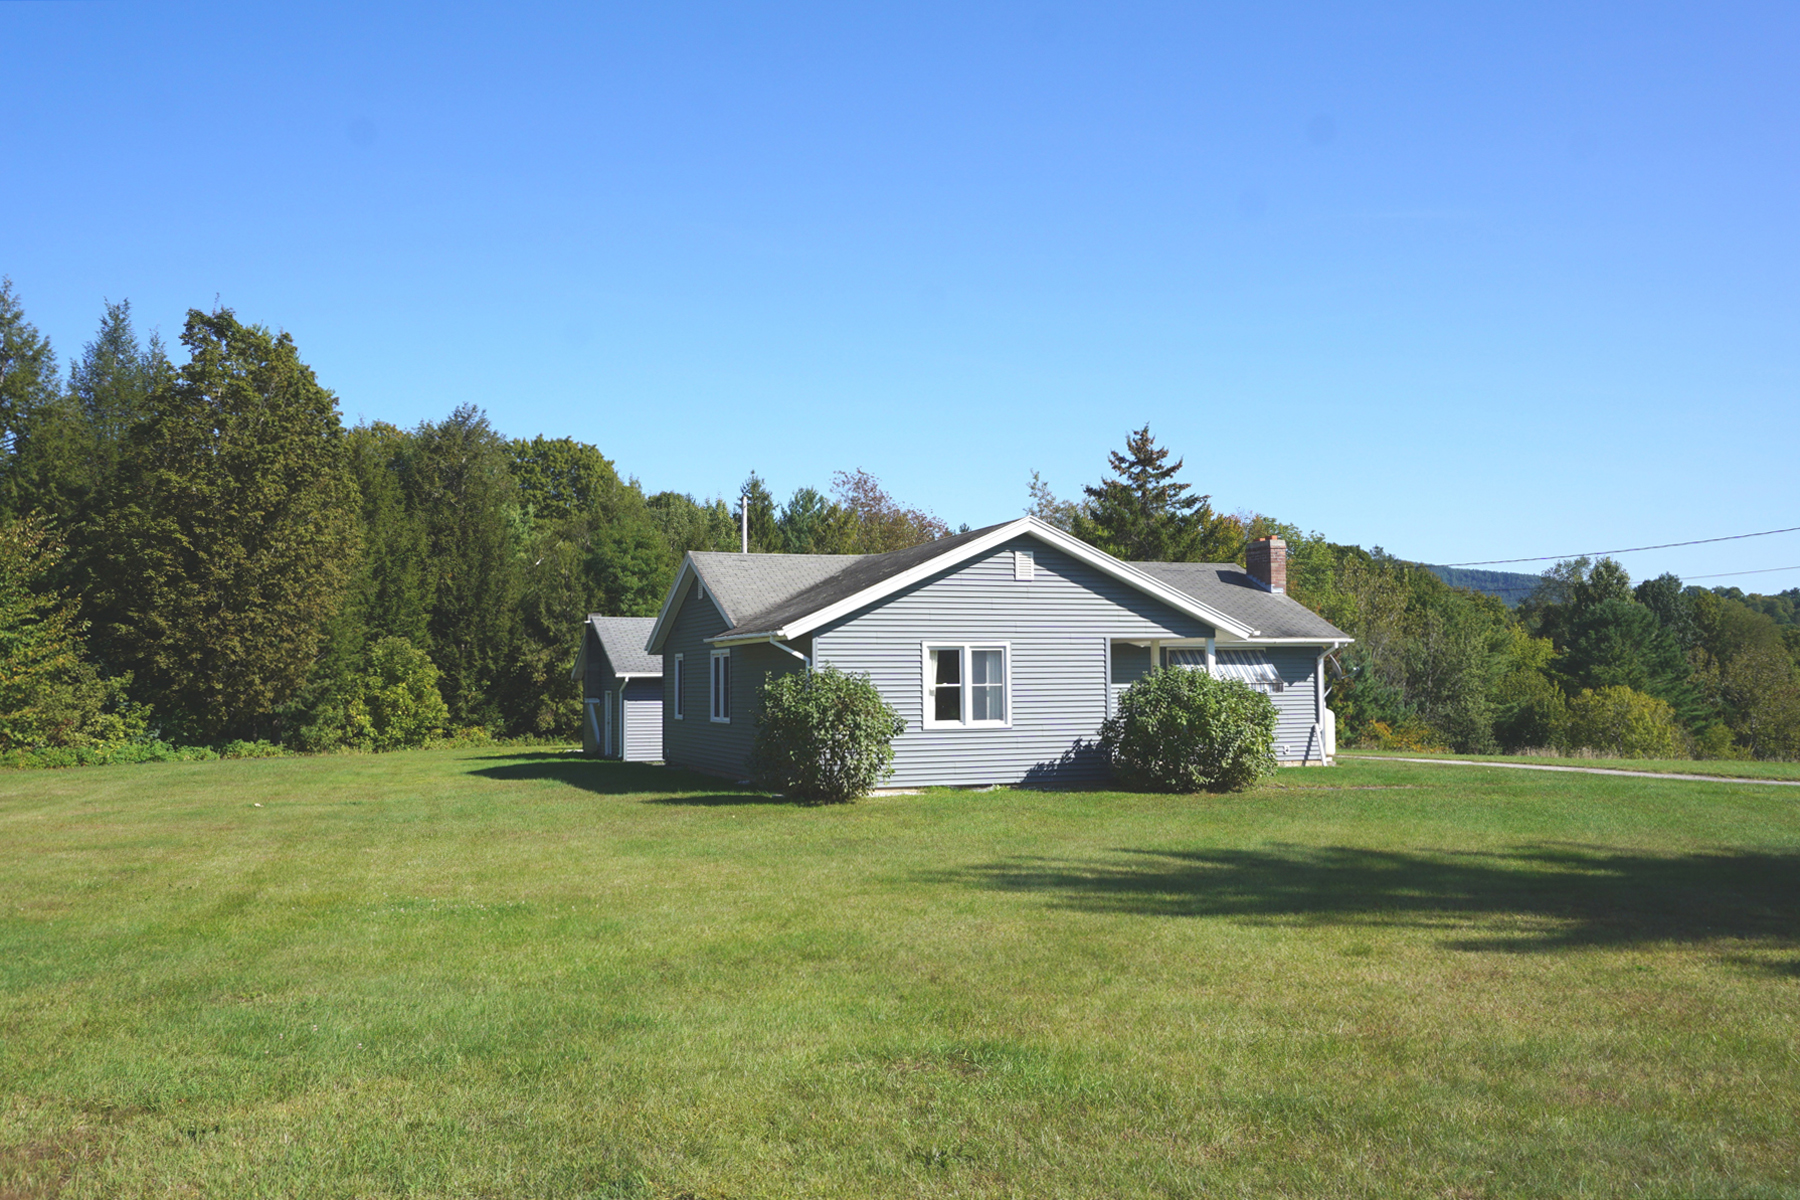 Single Family Homes for Sale at 159 Field Avenue, Pittsford 159 Field Ave Pittsford, Vermont 05763 United States